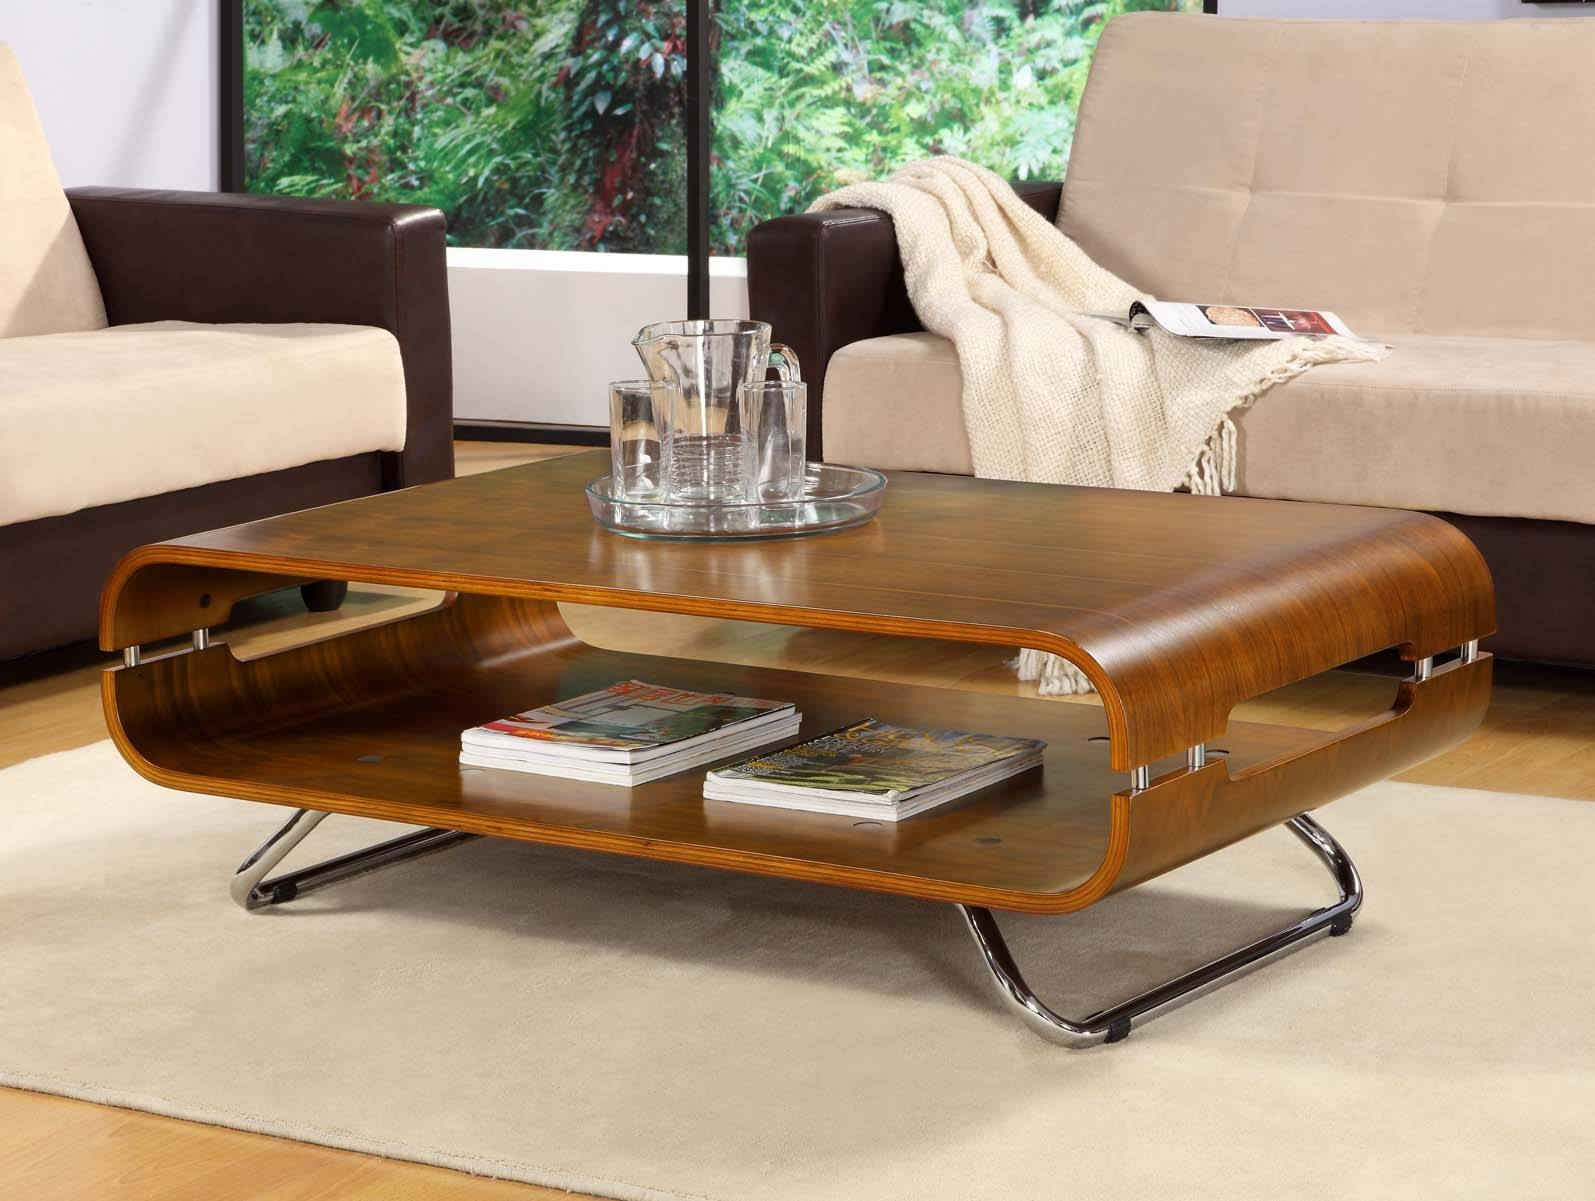 Curved Coffee Table Cool As Round Coffee Table And Cool Coffee Regarding Curve Coffee Tables (View 5 of 30)